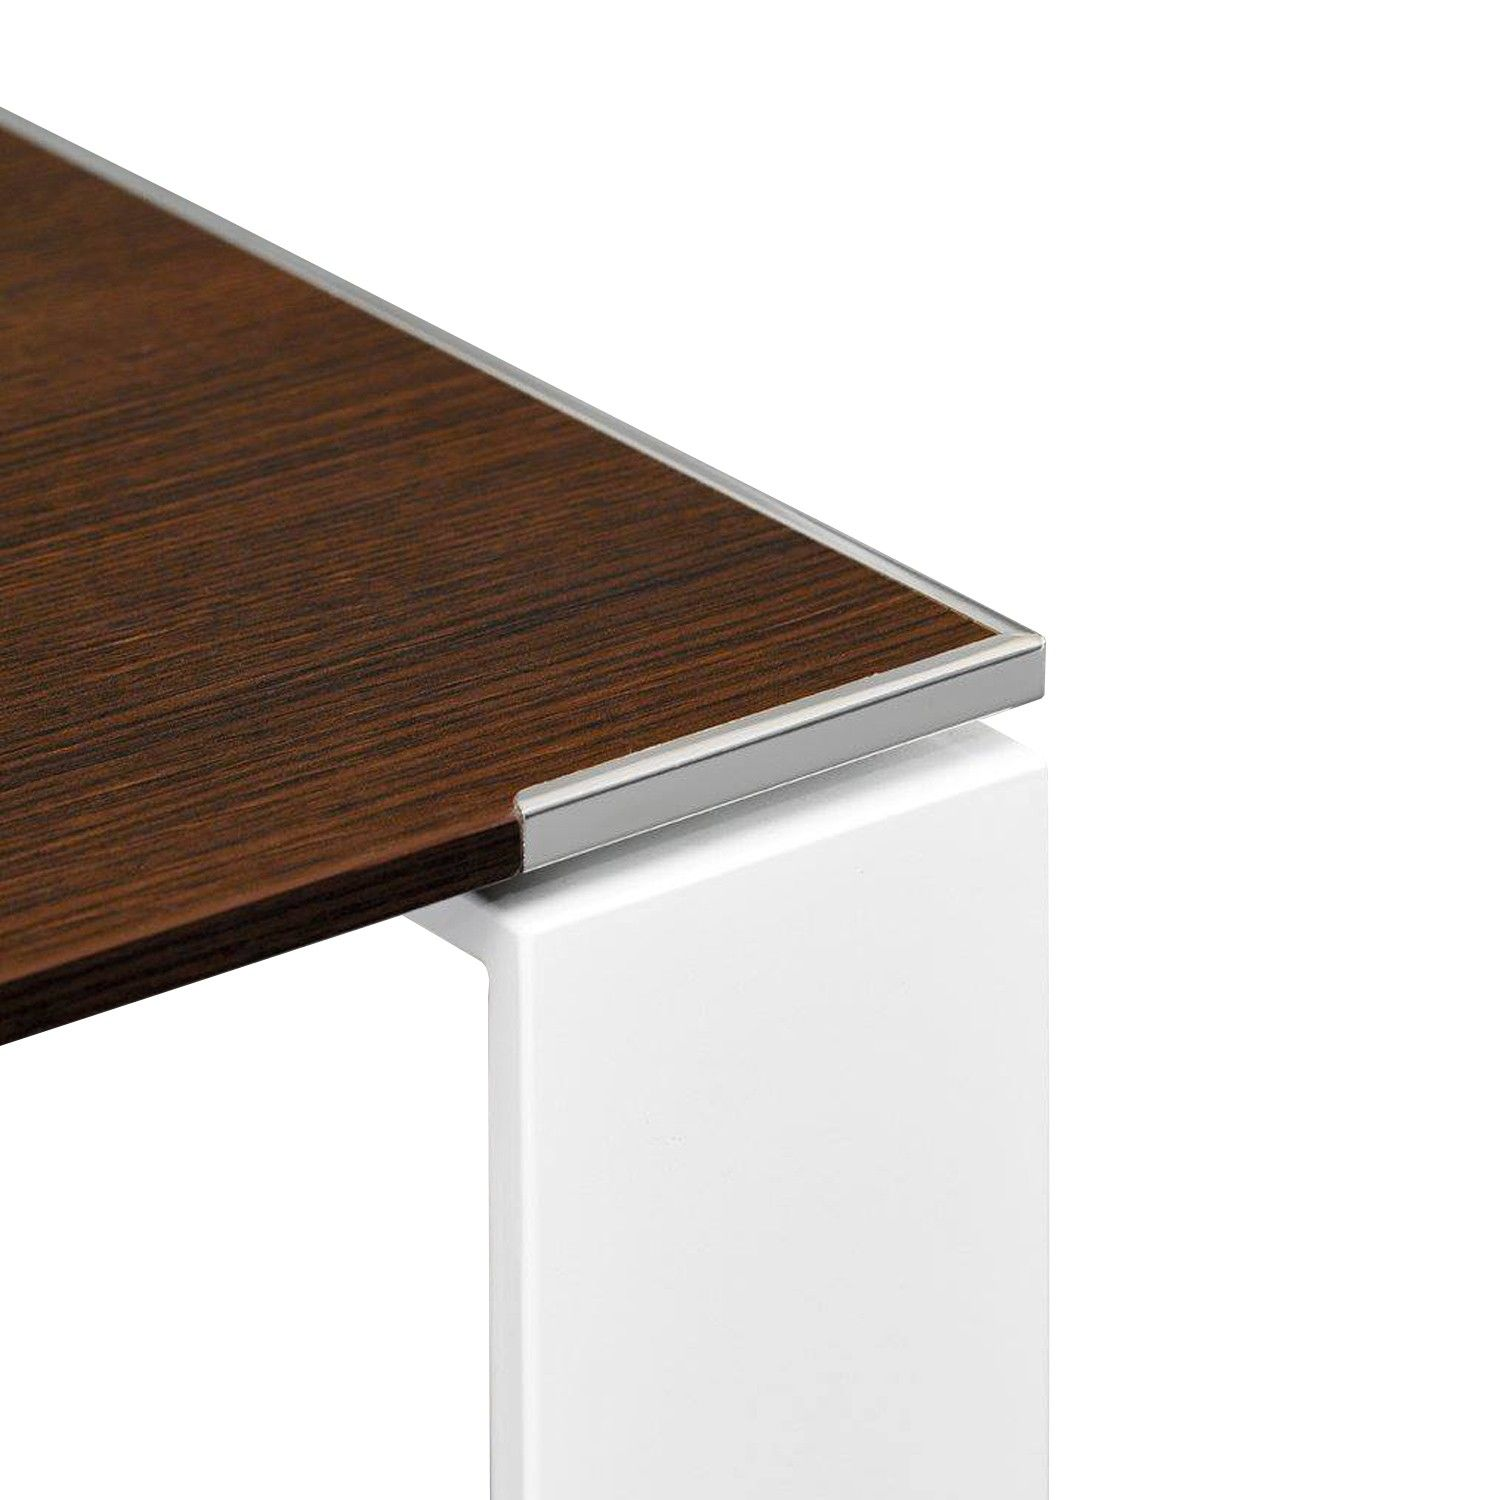 Executive office table with glass top x executive office desk top detail  bureau  pinterest  office